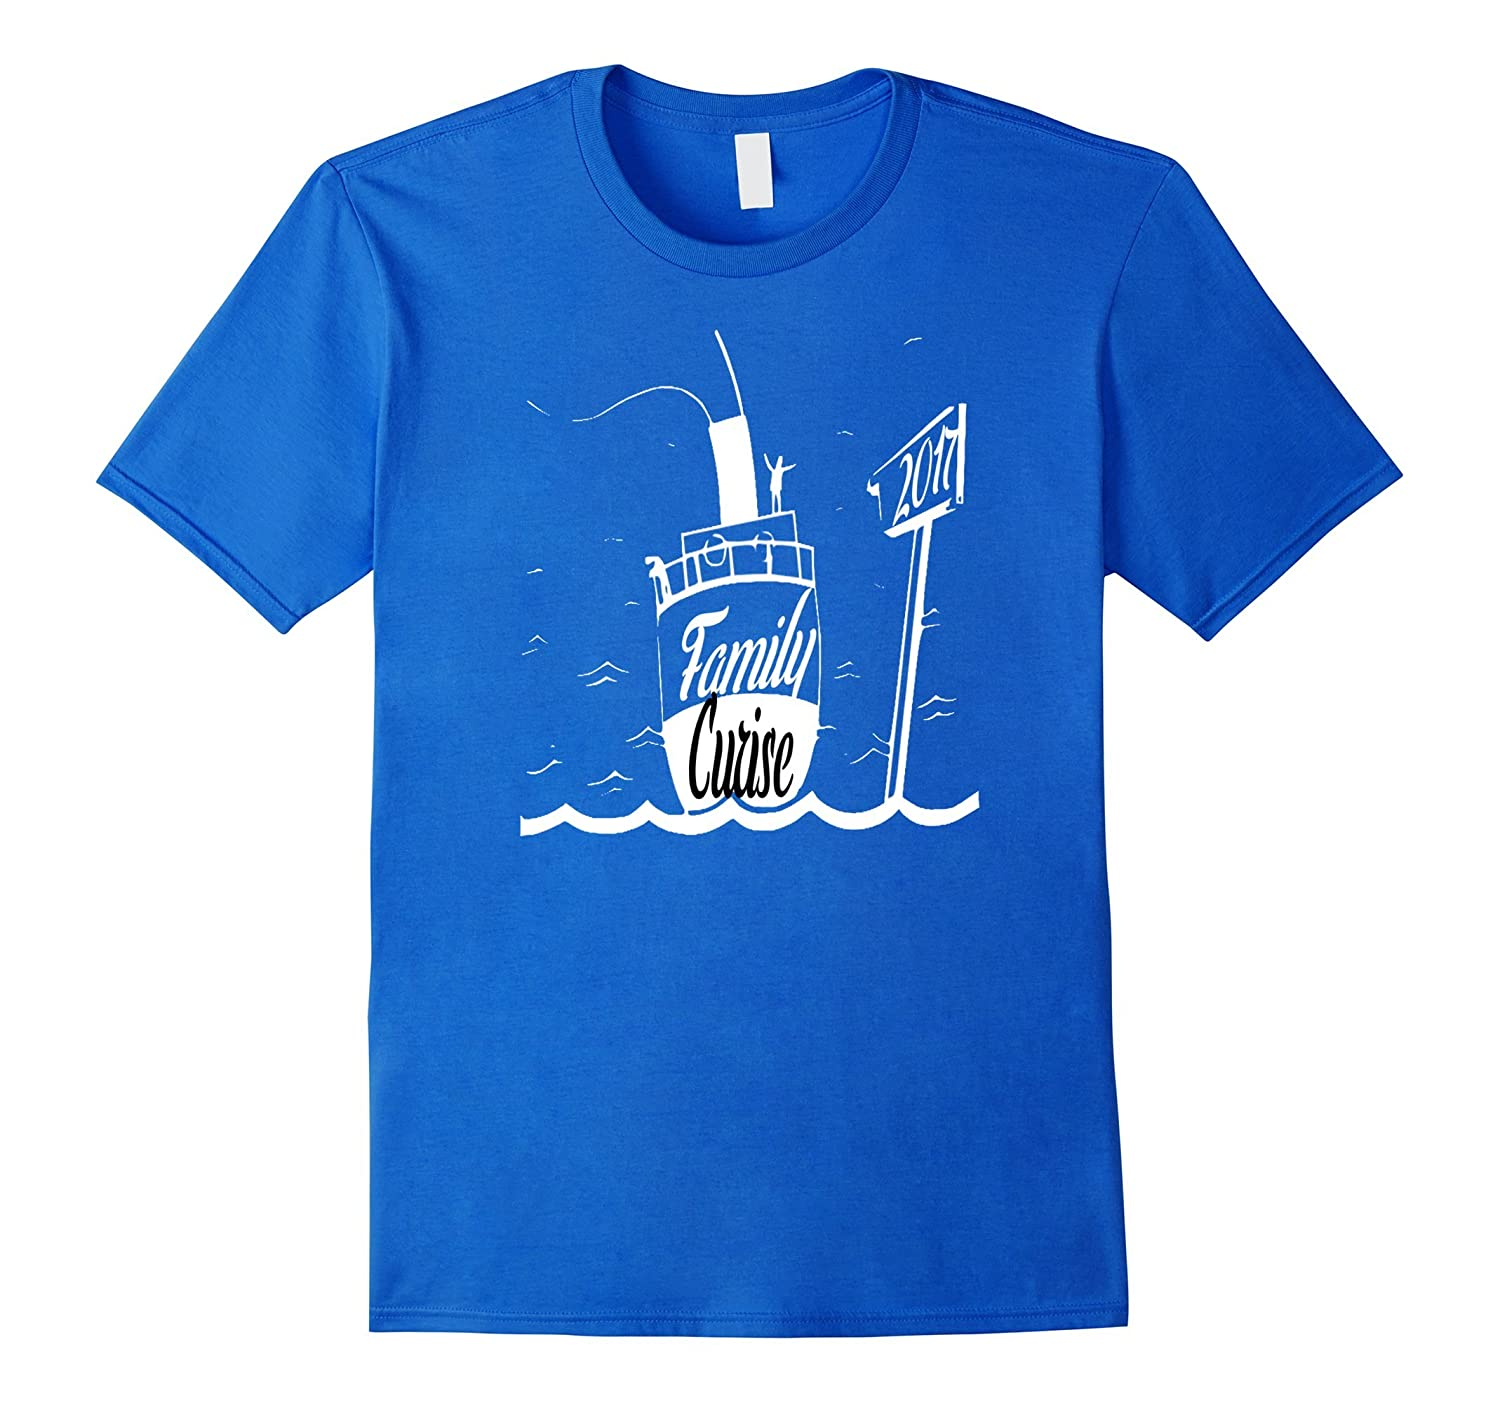 2017 Family Cruise Shirts Group Vacation Summer Shirt-CD